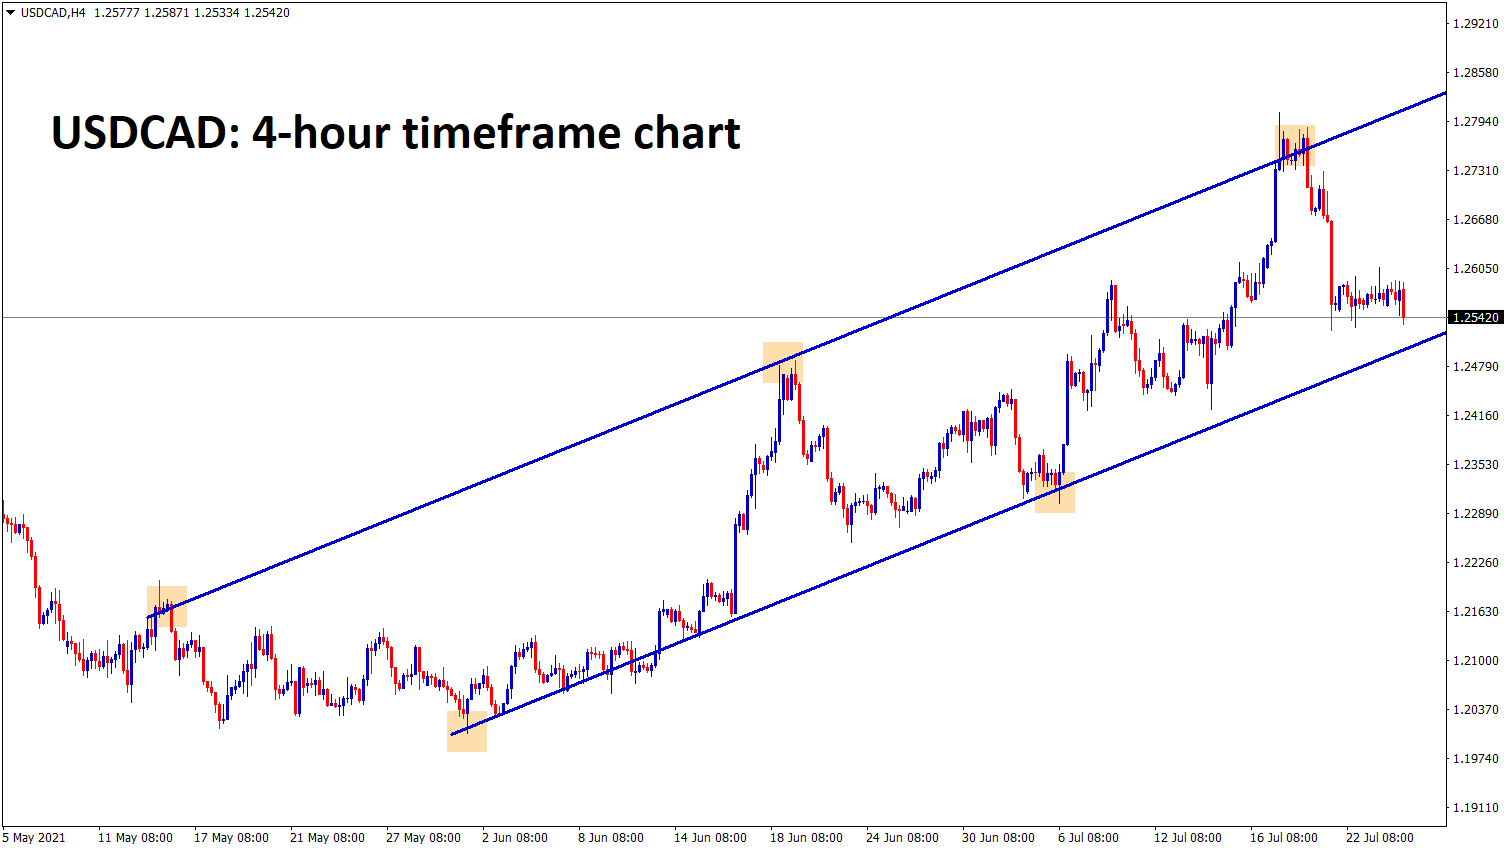 USDCAD is falling to the higher low level of Uptrend line